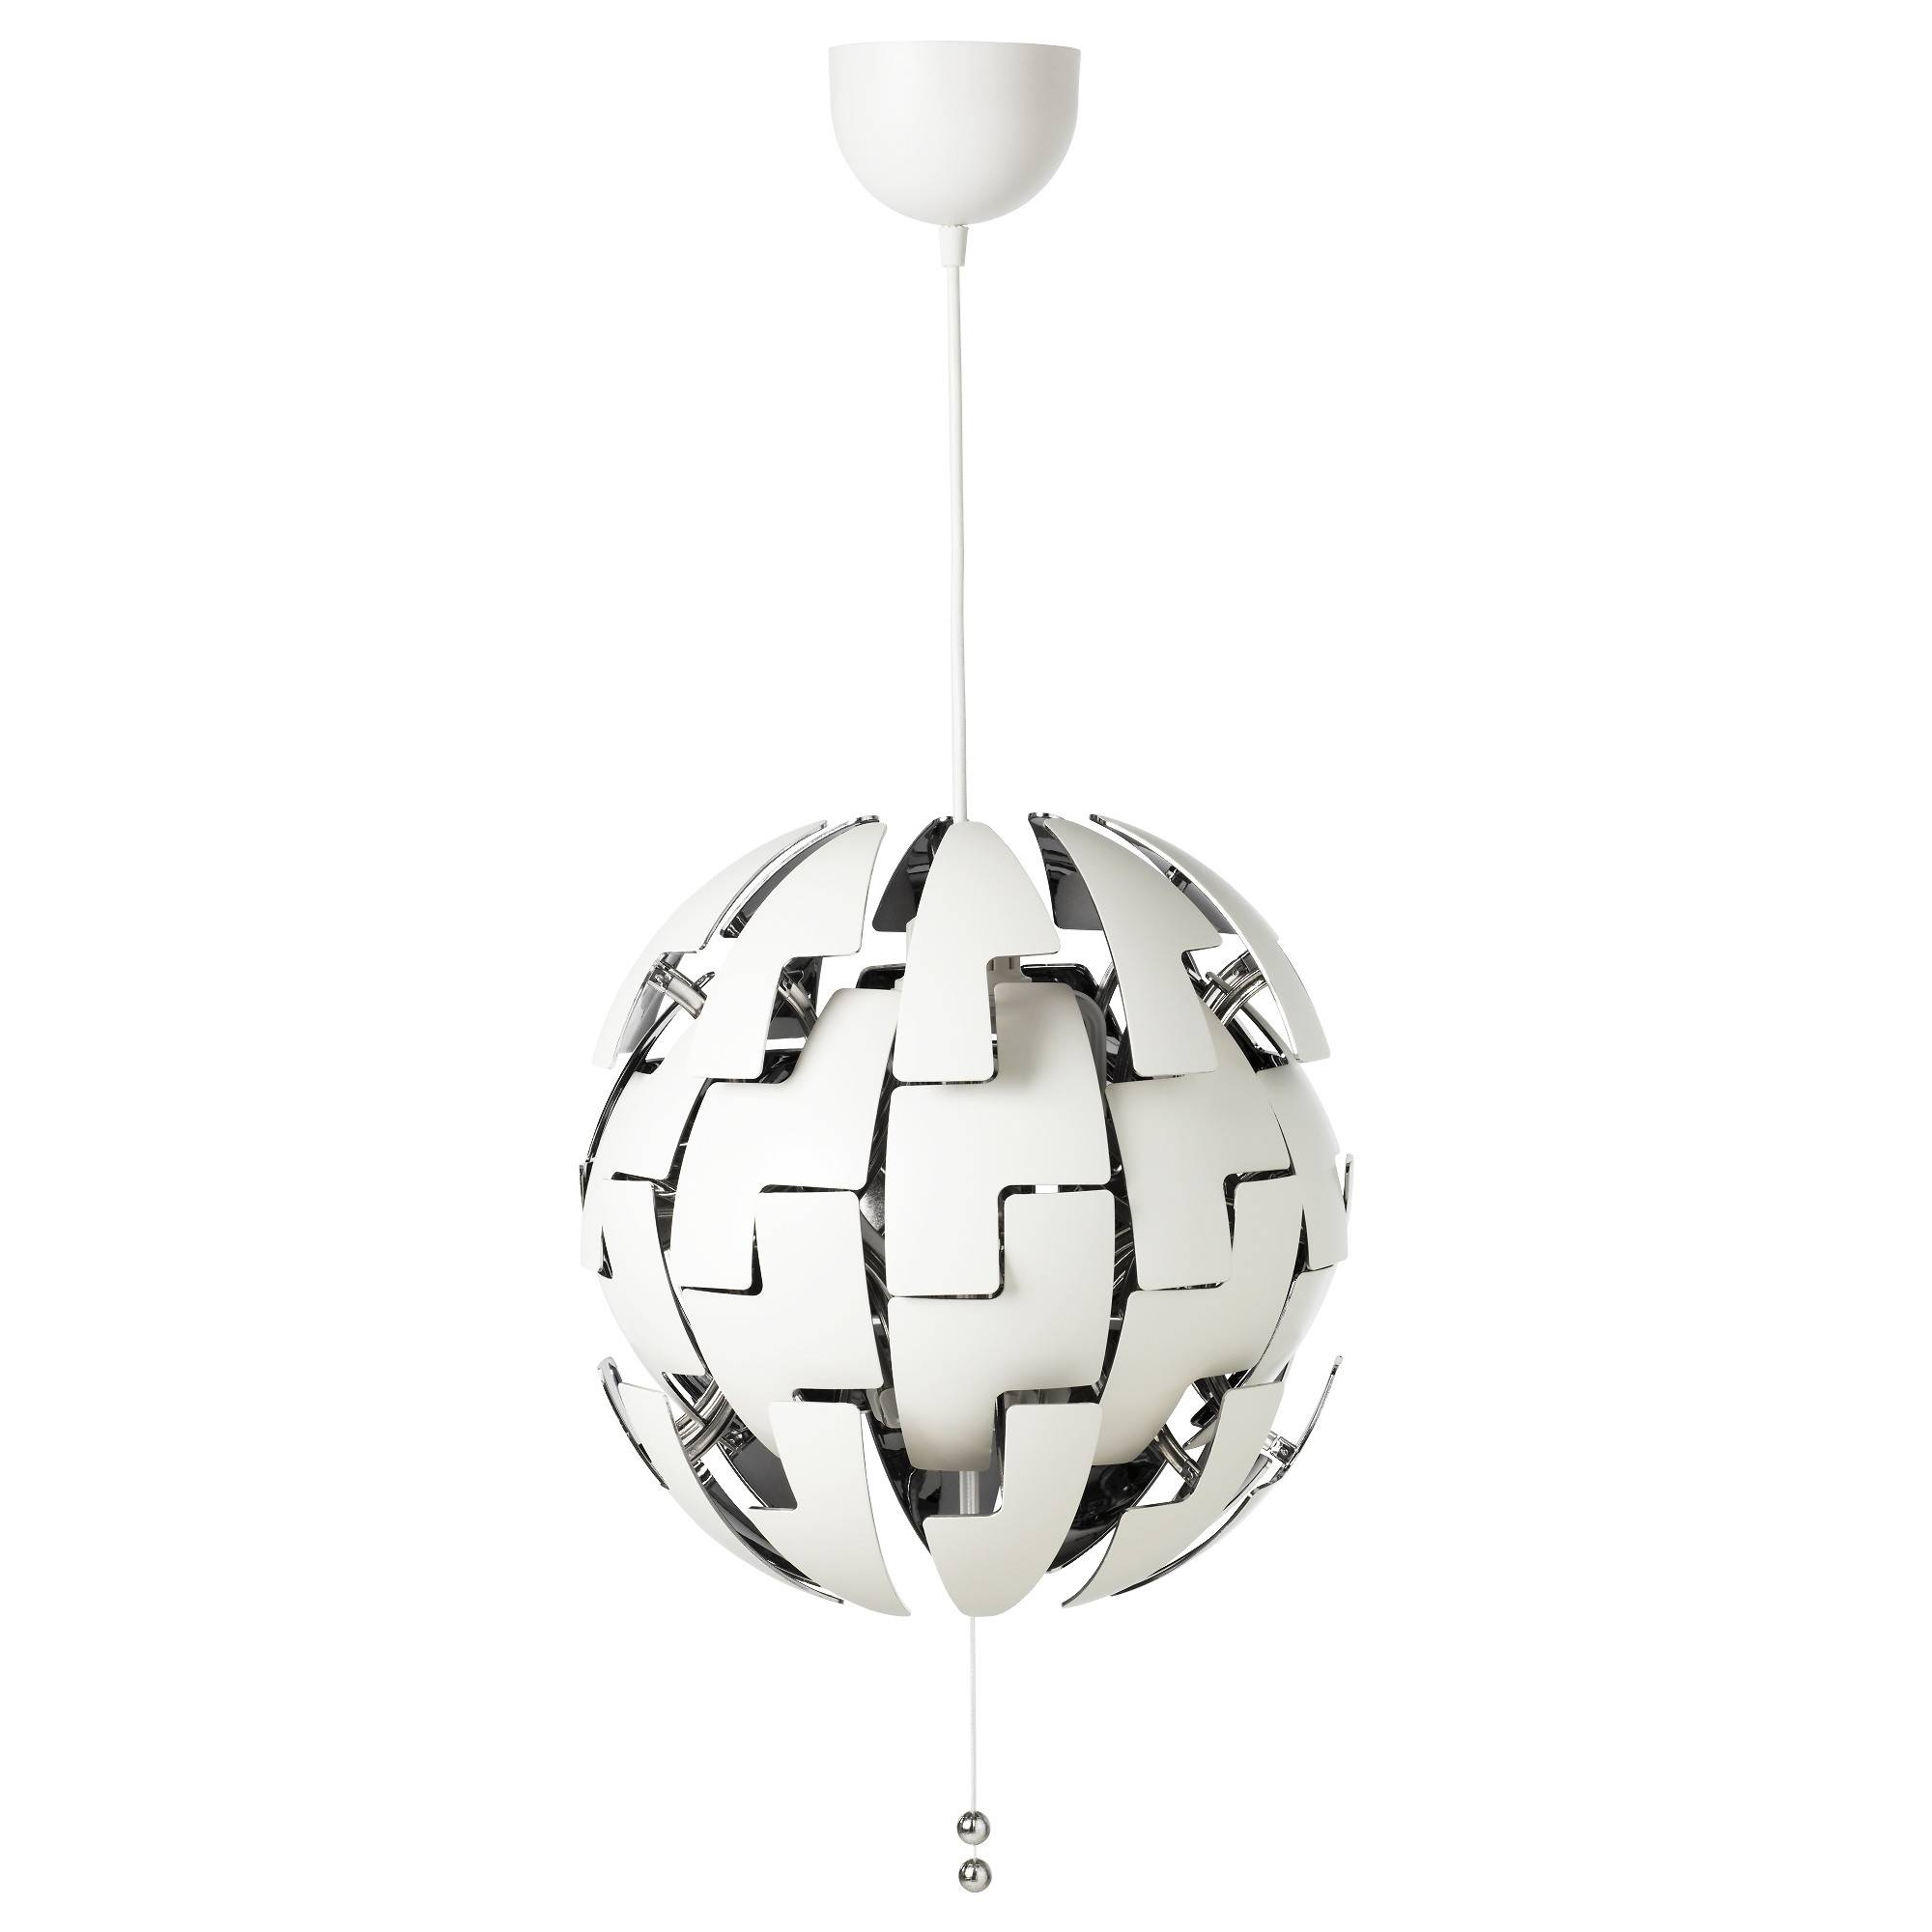 Ceiling Lights & Lamps - Ikea throughout Ikea Globe Pendant Lights (Image 3 of 15)